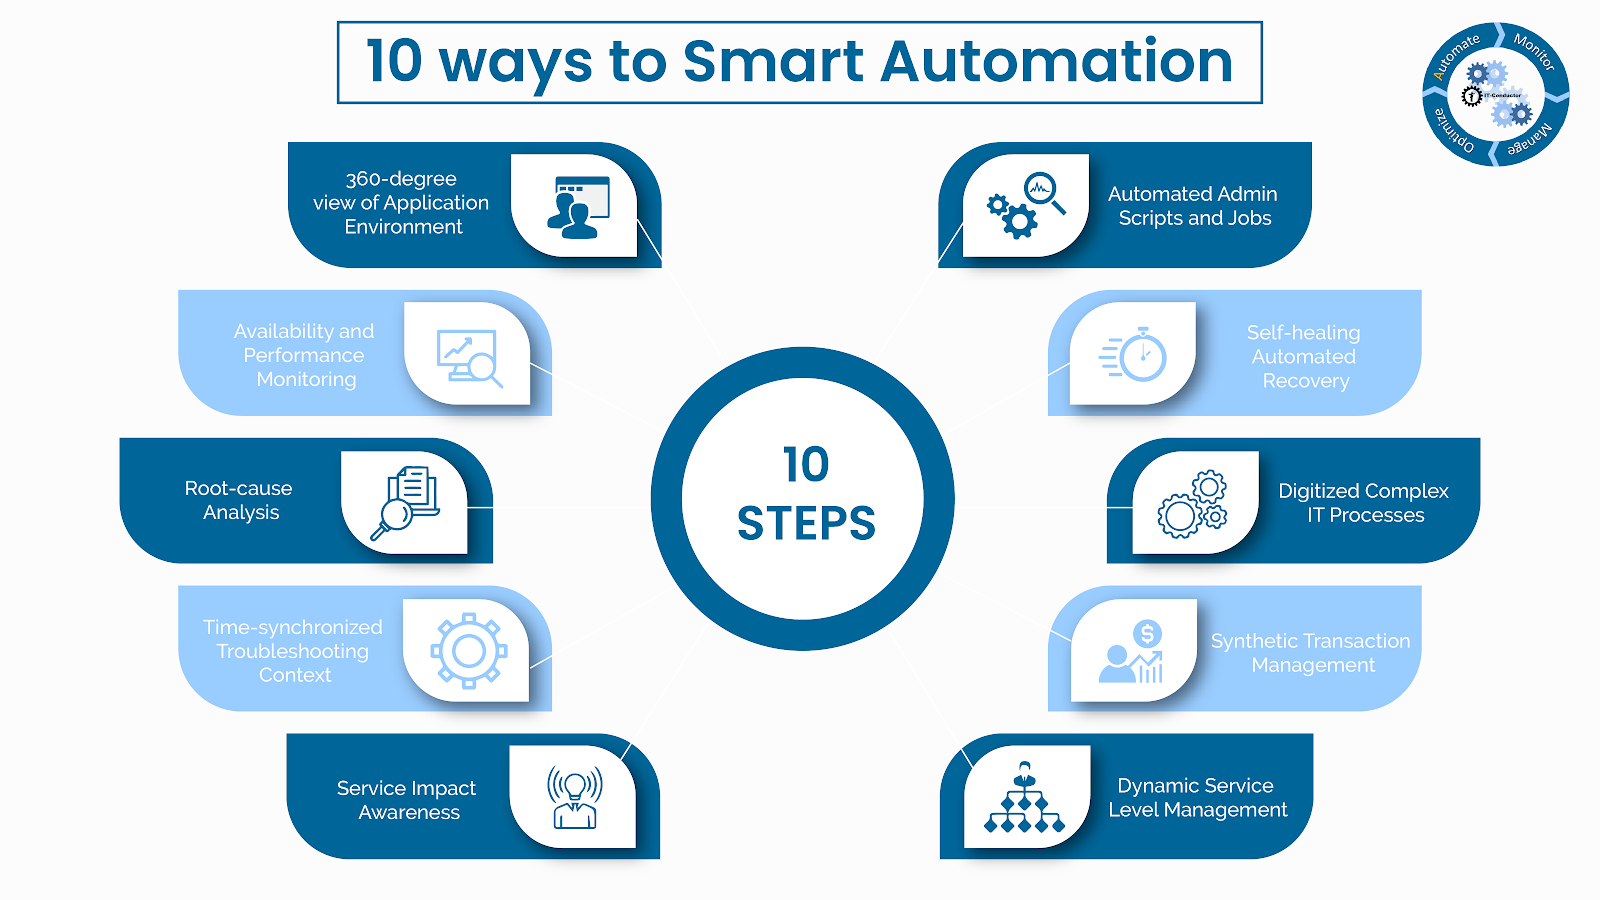 IT-Conductor's 10-ways to Smart Automation